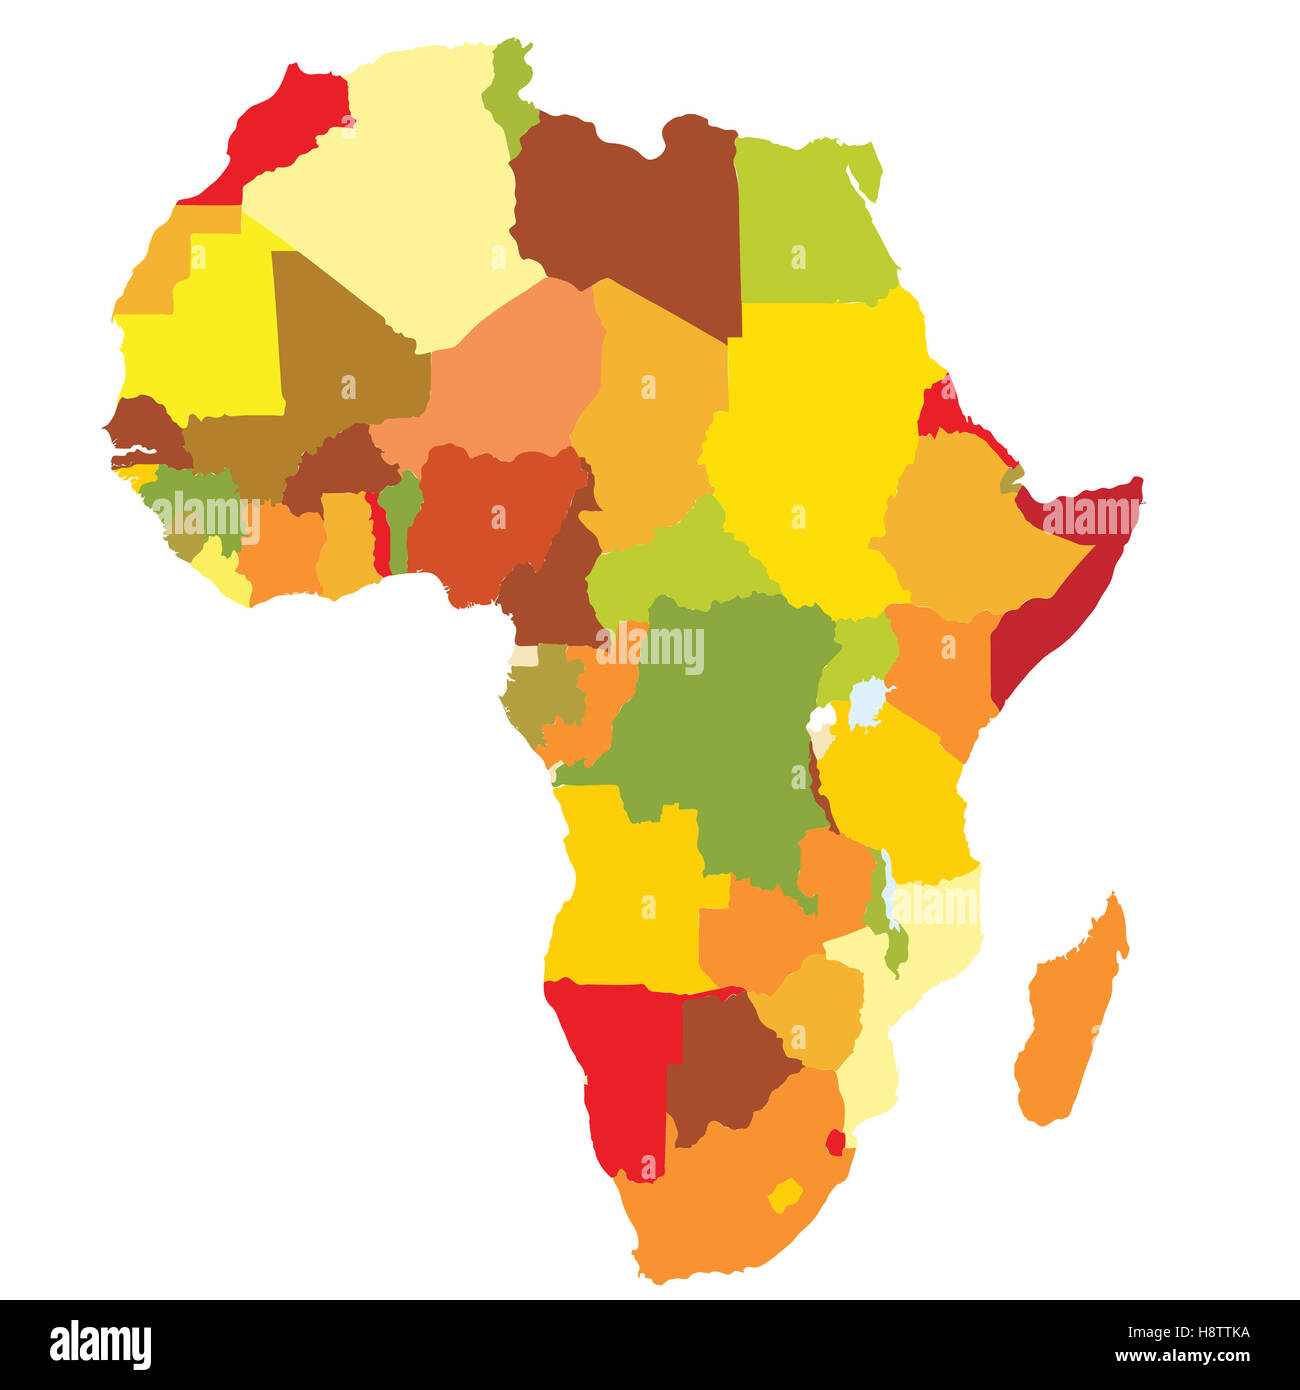 political map of africa with country territories in different